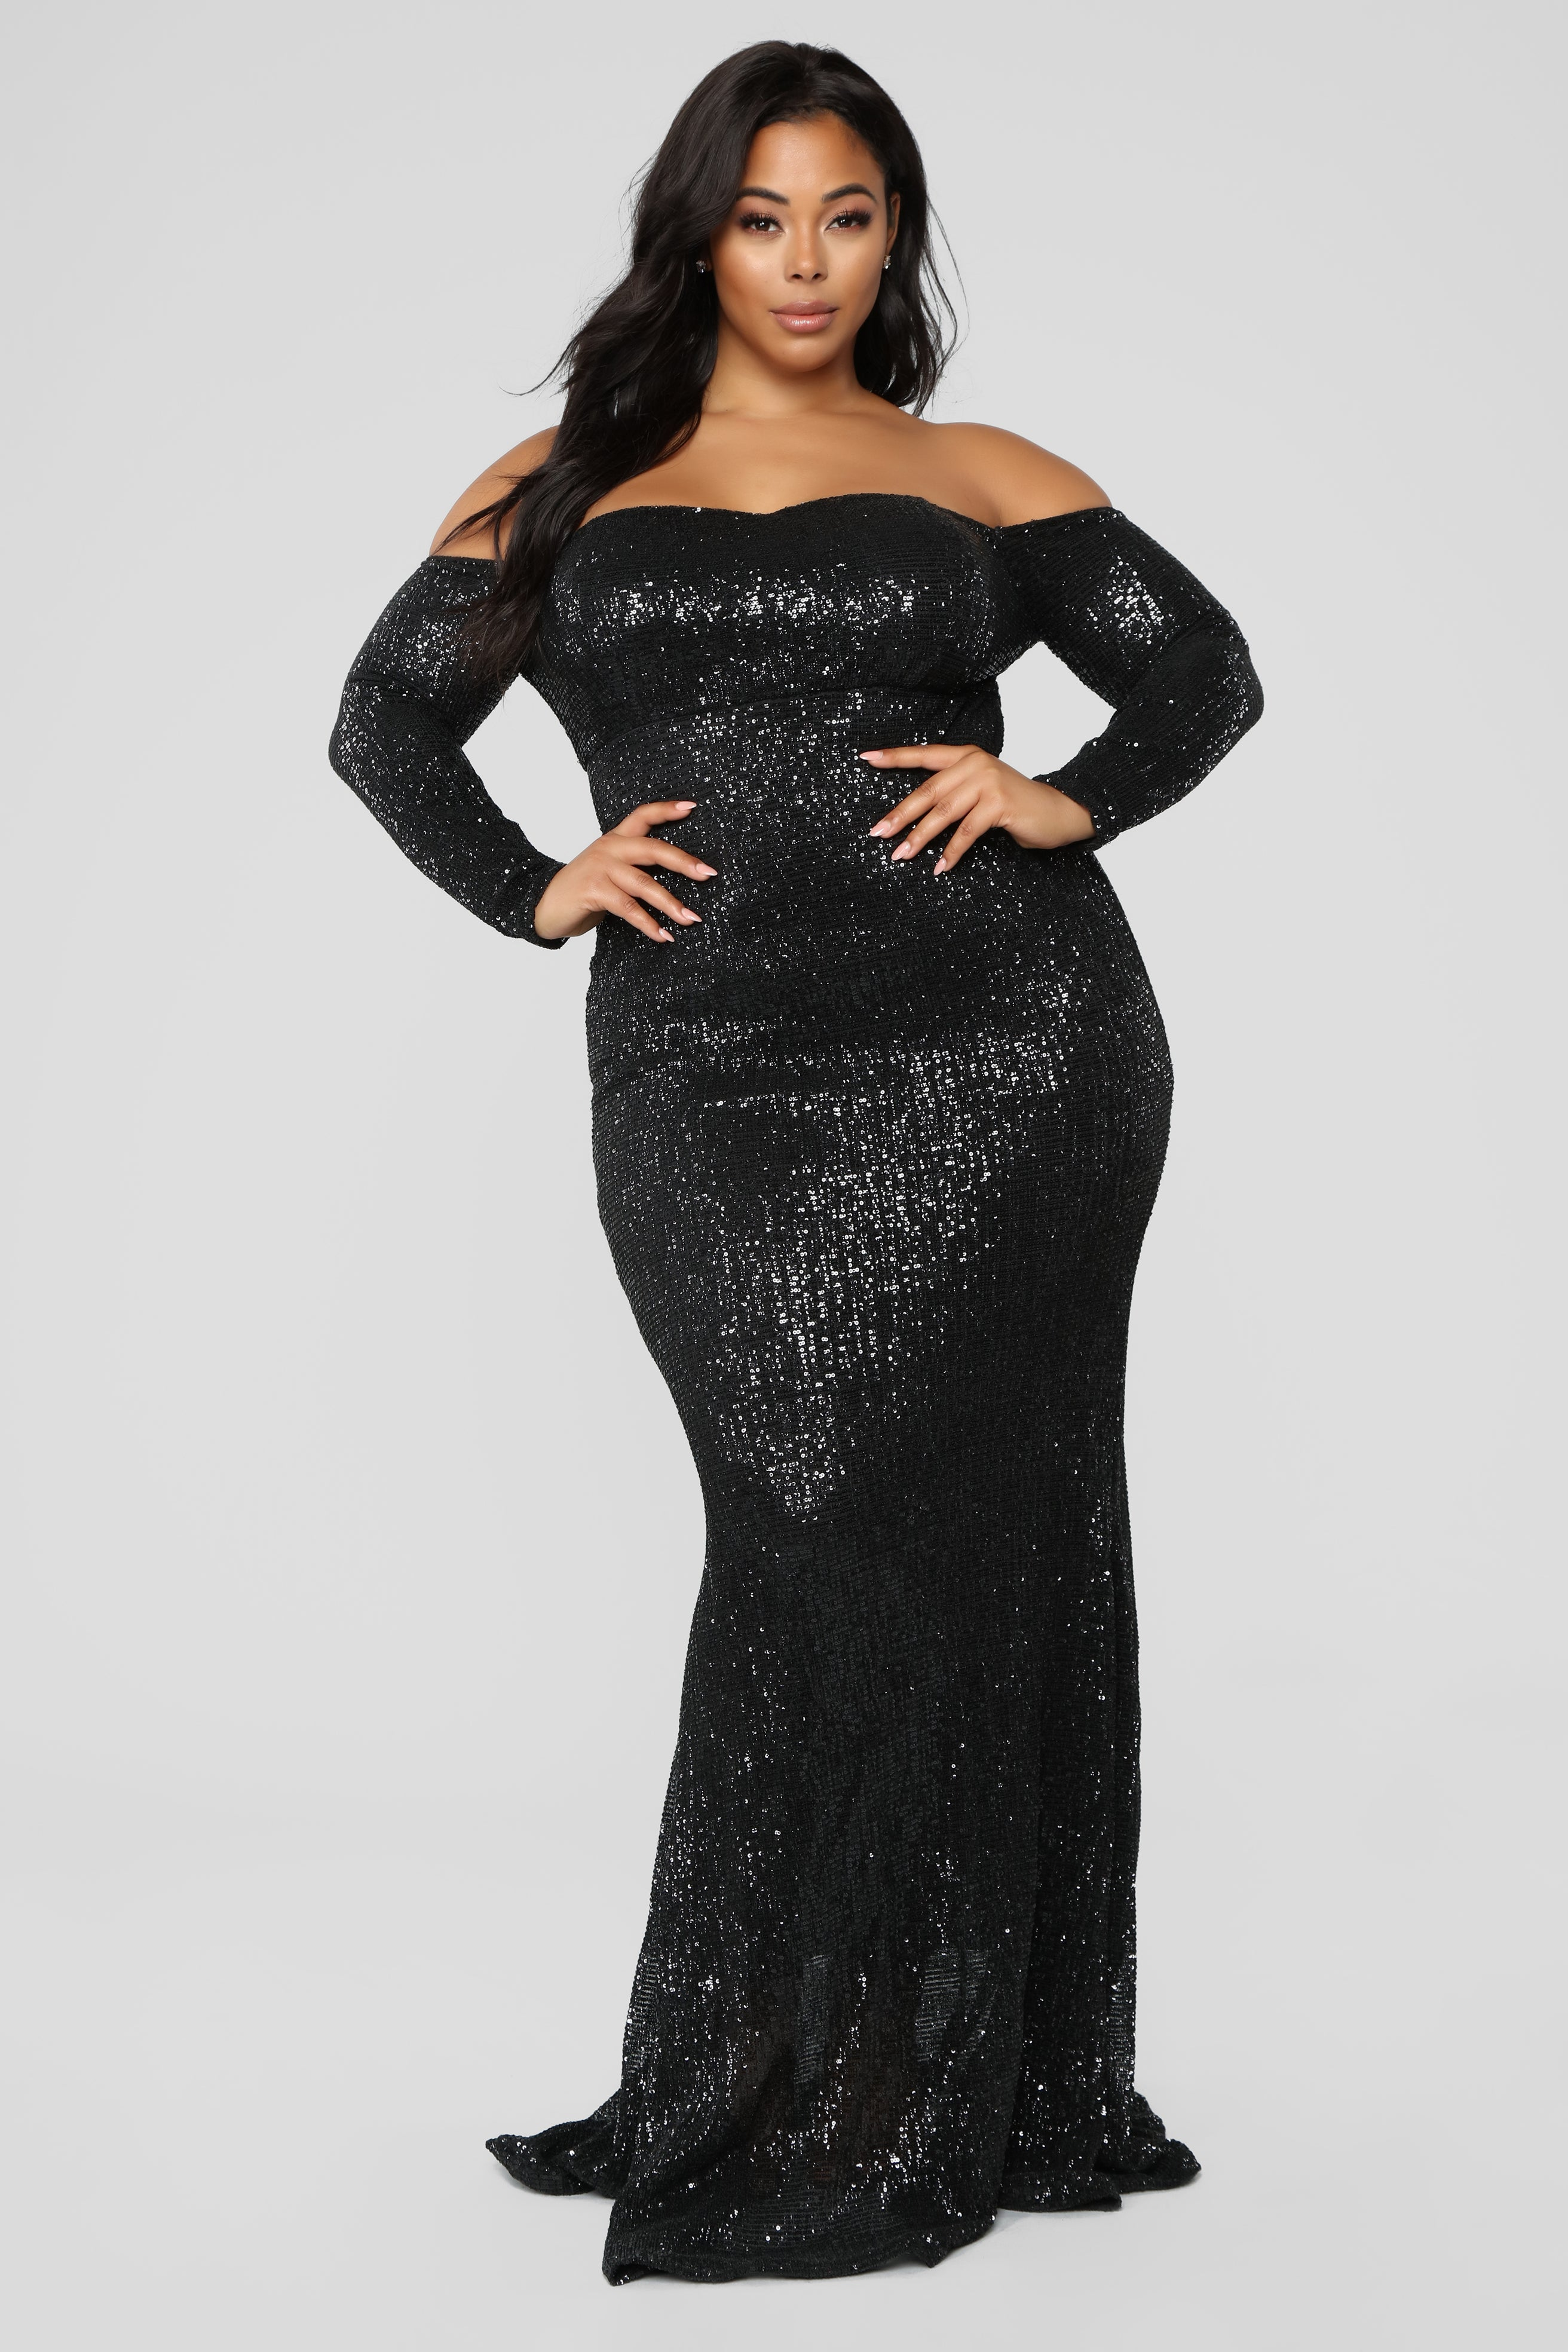 ecb70824733 Sequin Top Maxi Dress Plus Size - Data Dynamic AG